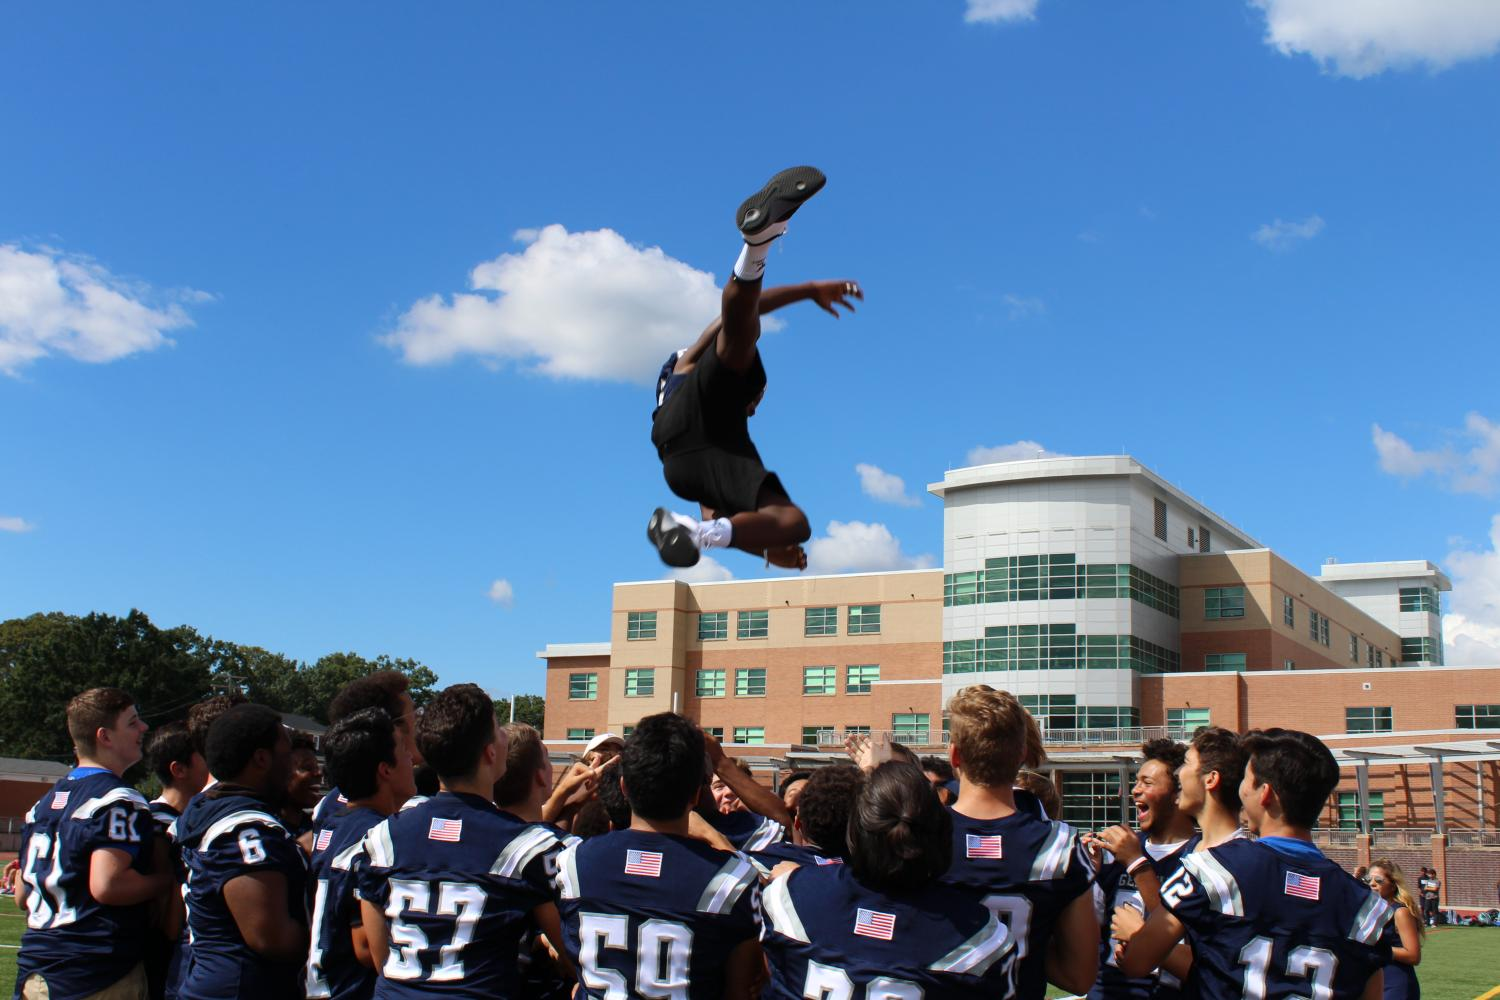 The varsity football team energizes the crowd by throwing a team member into the air